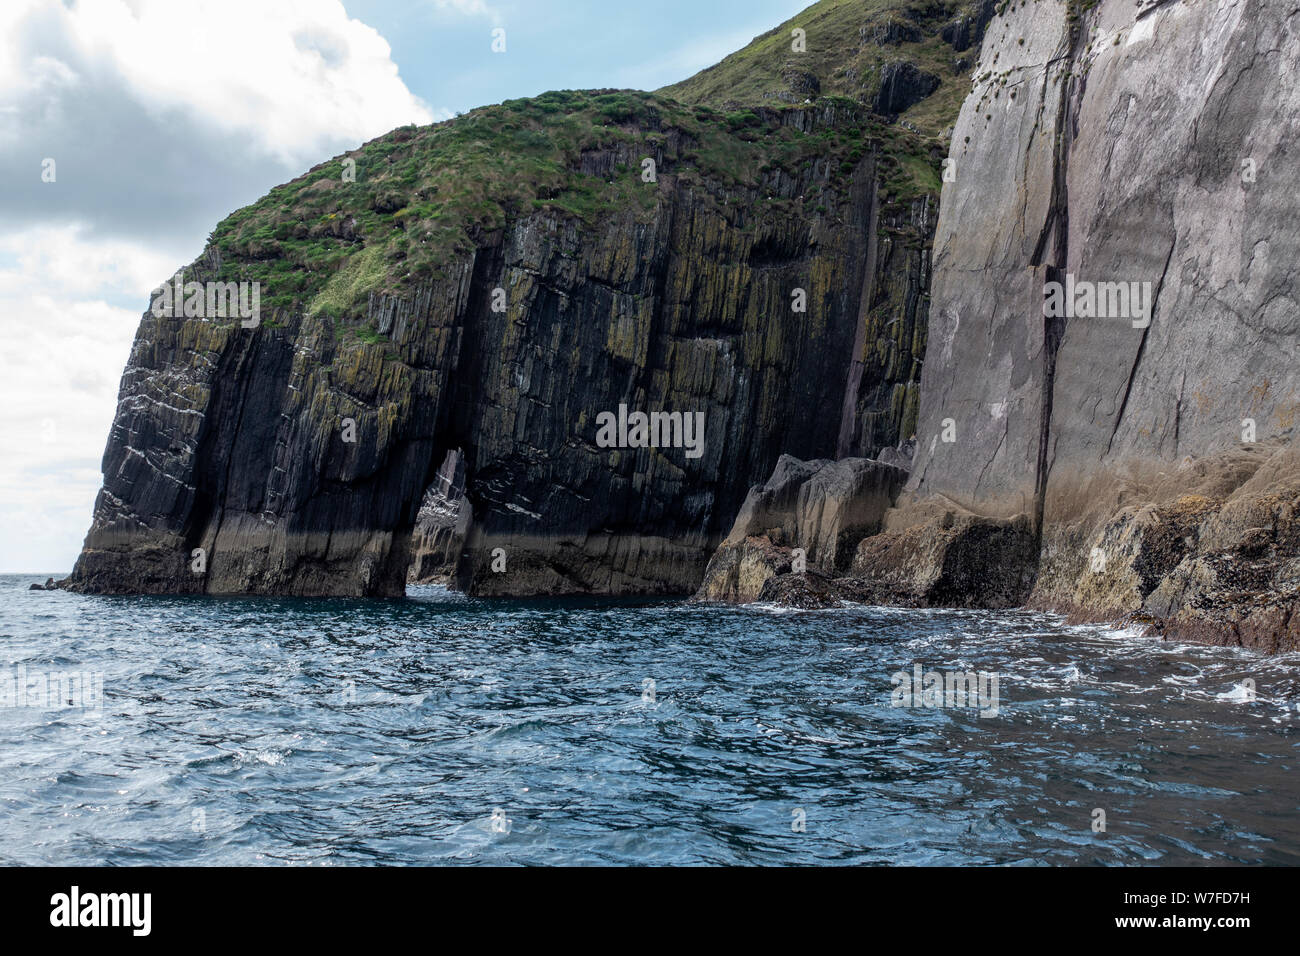 Sea arch viewed from boat - Dingle Peninsula, County Kerry, Republic of Ireland Stock Photo